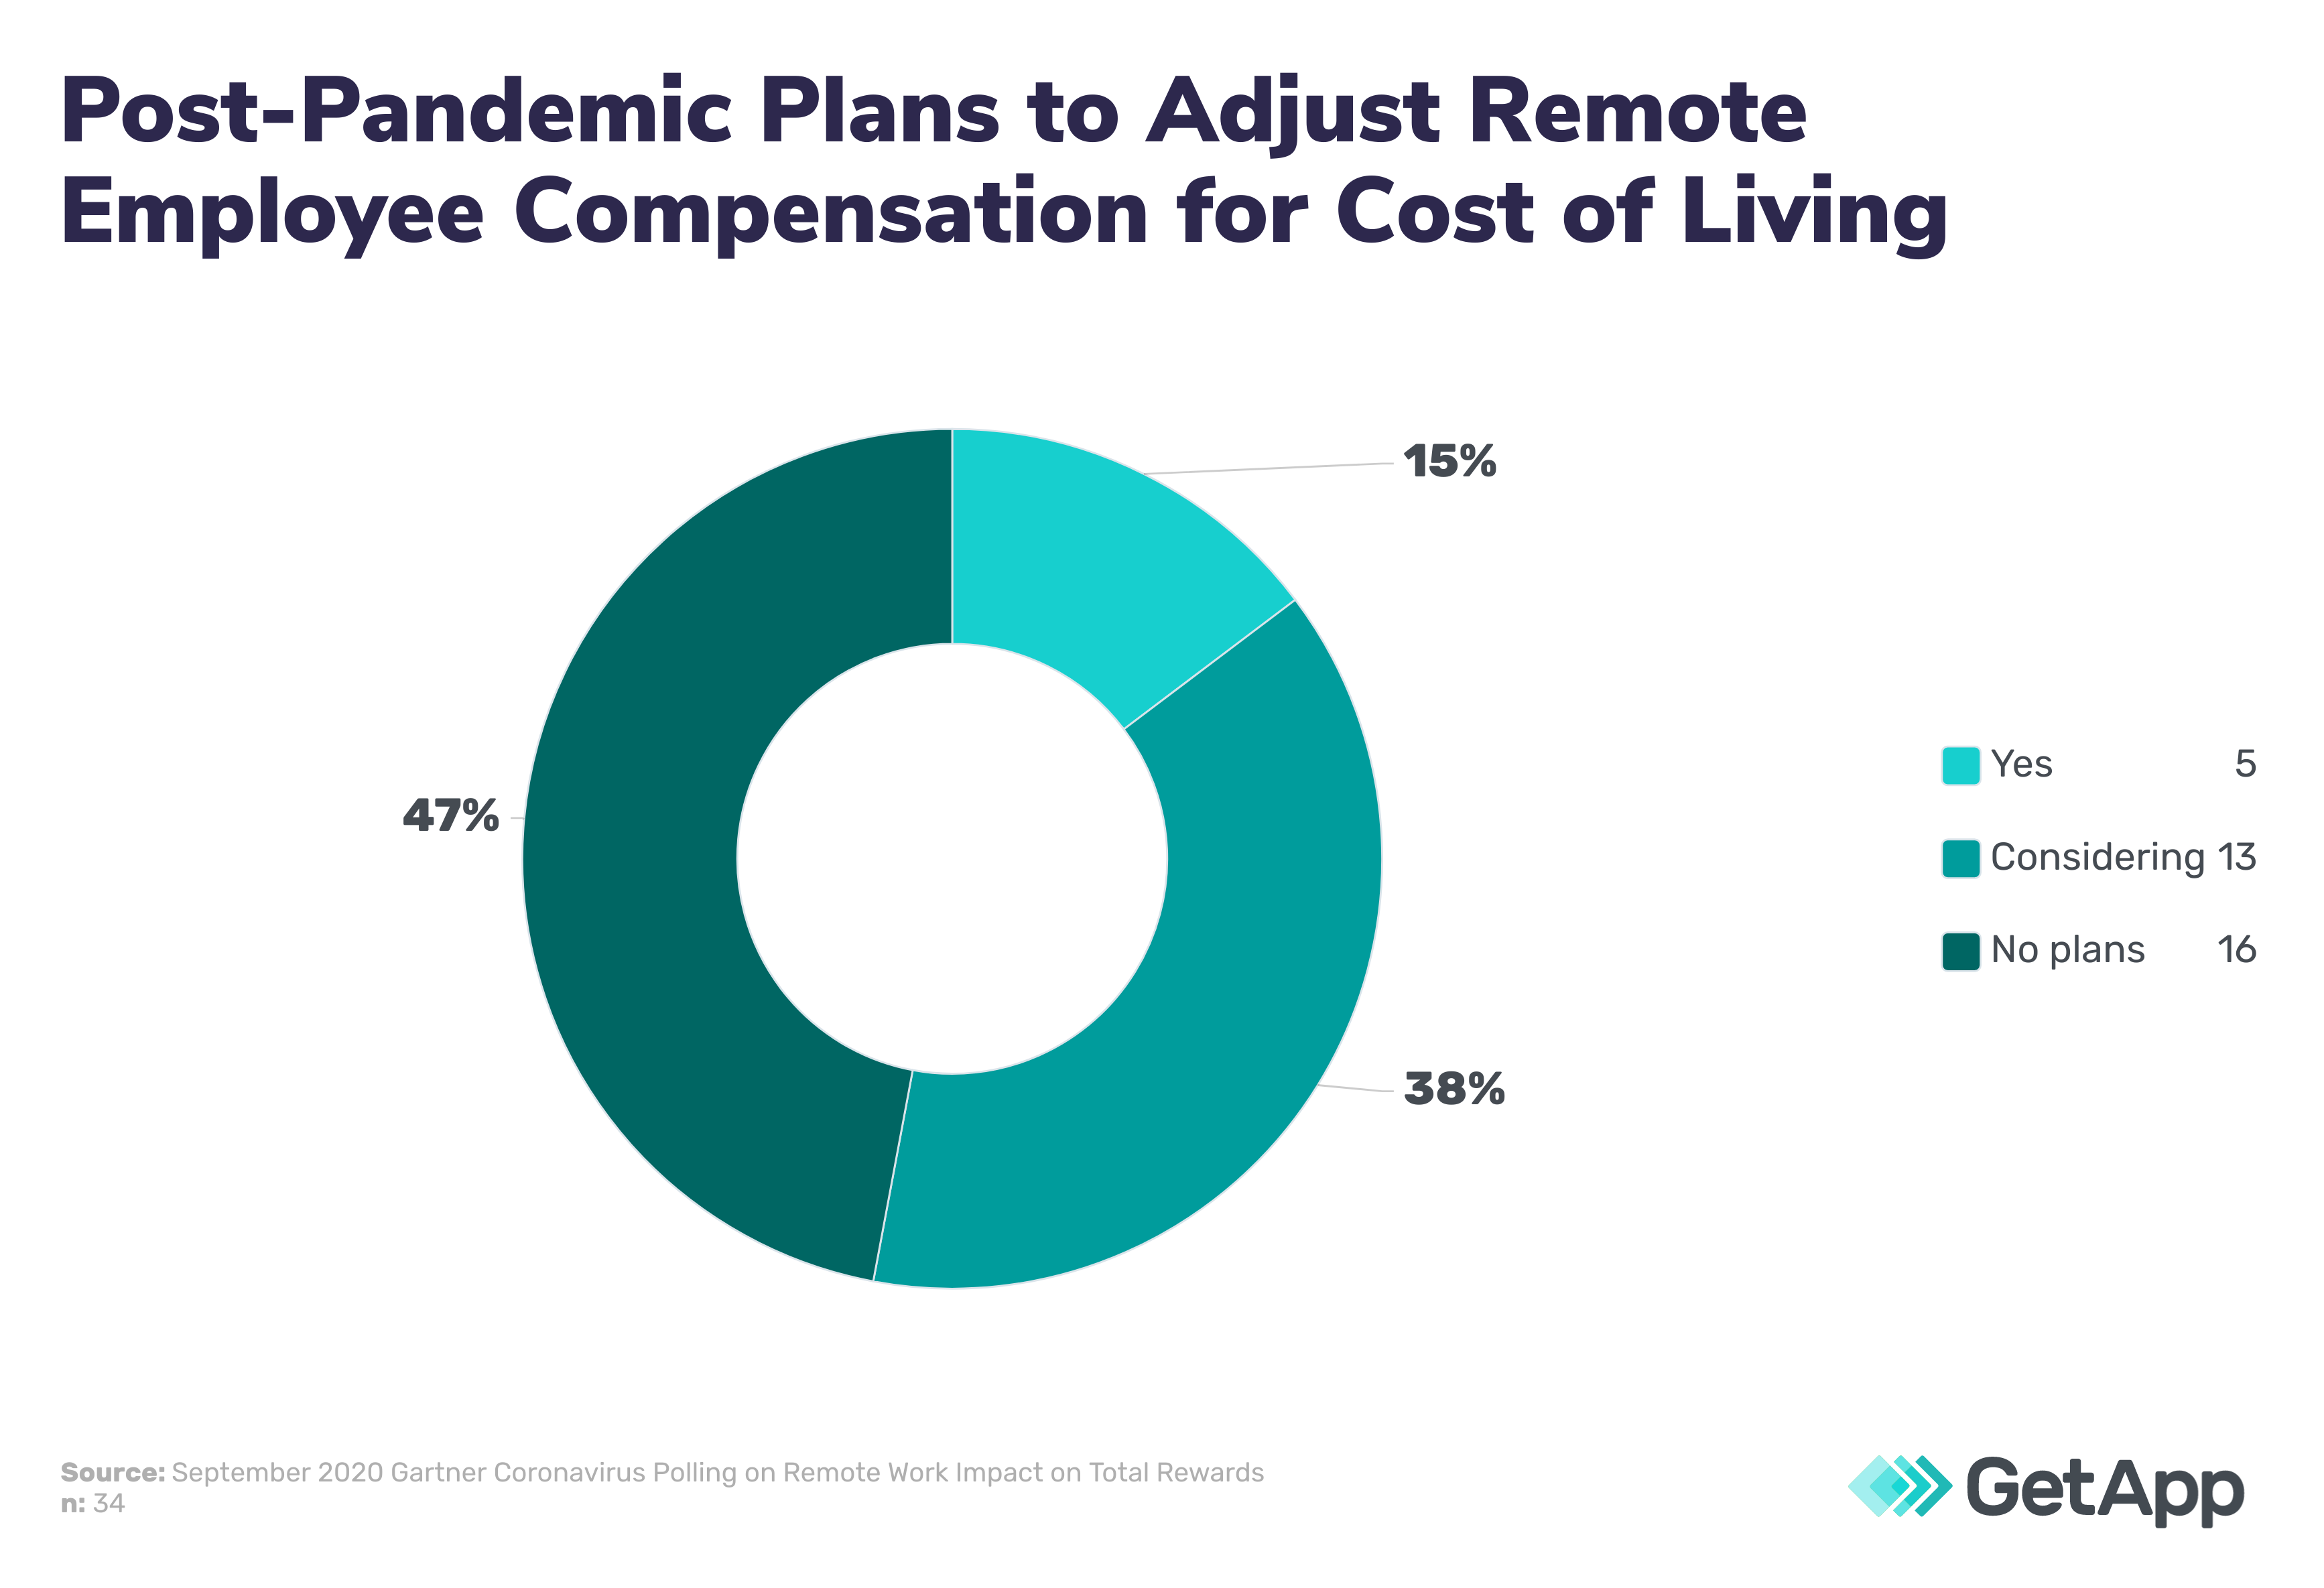 Post-Pandemic plans to adjust remote employee compensation for cost of living